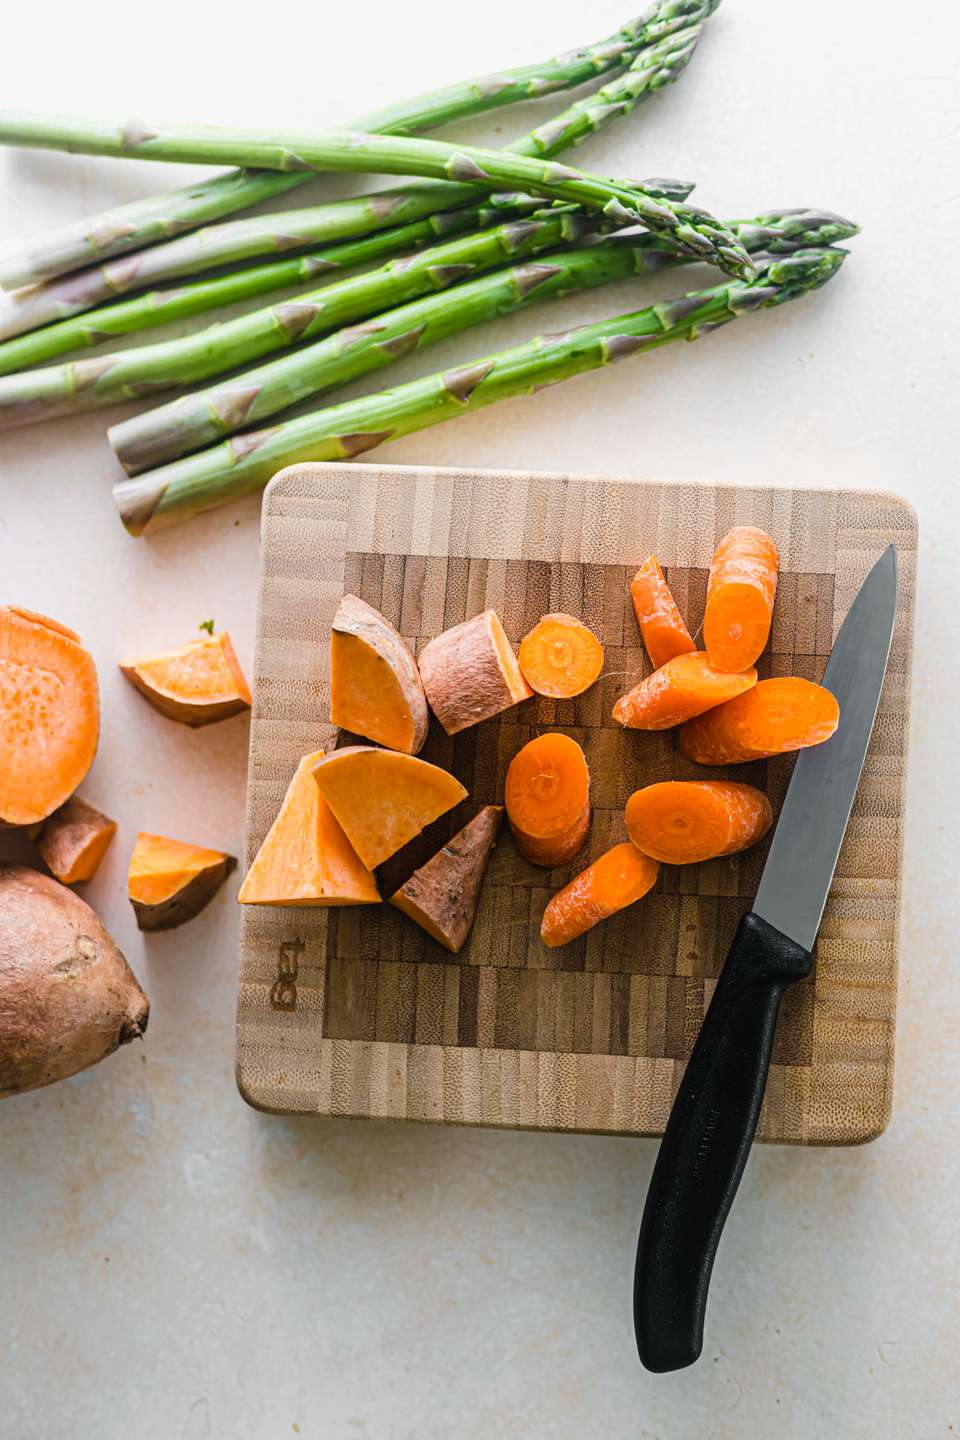 Chopped sweet potatoes carrots asparagus how to roast vegetables